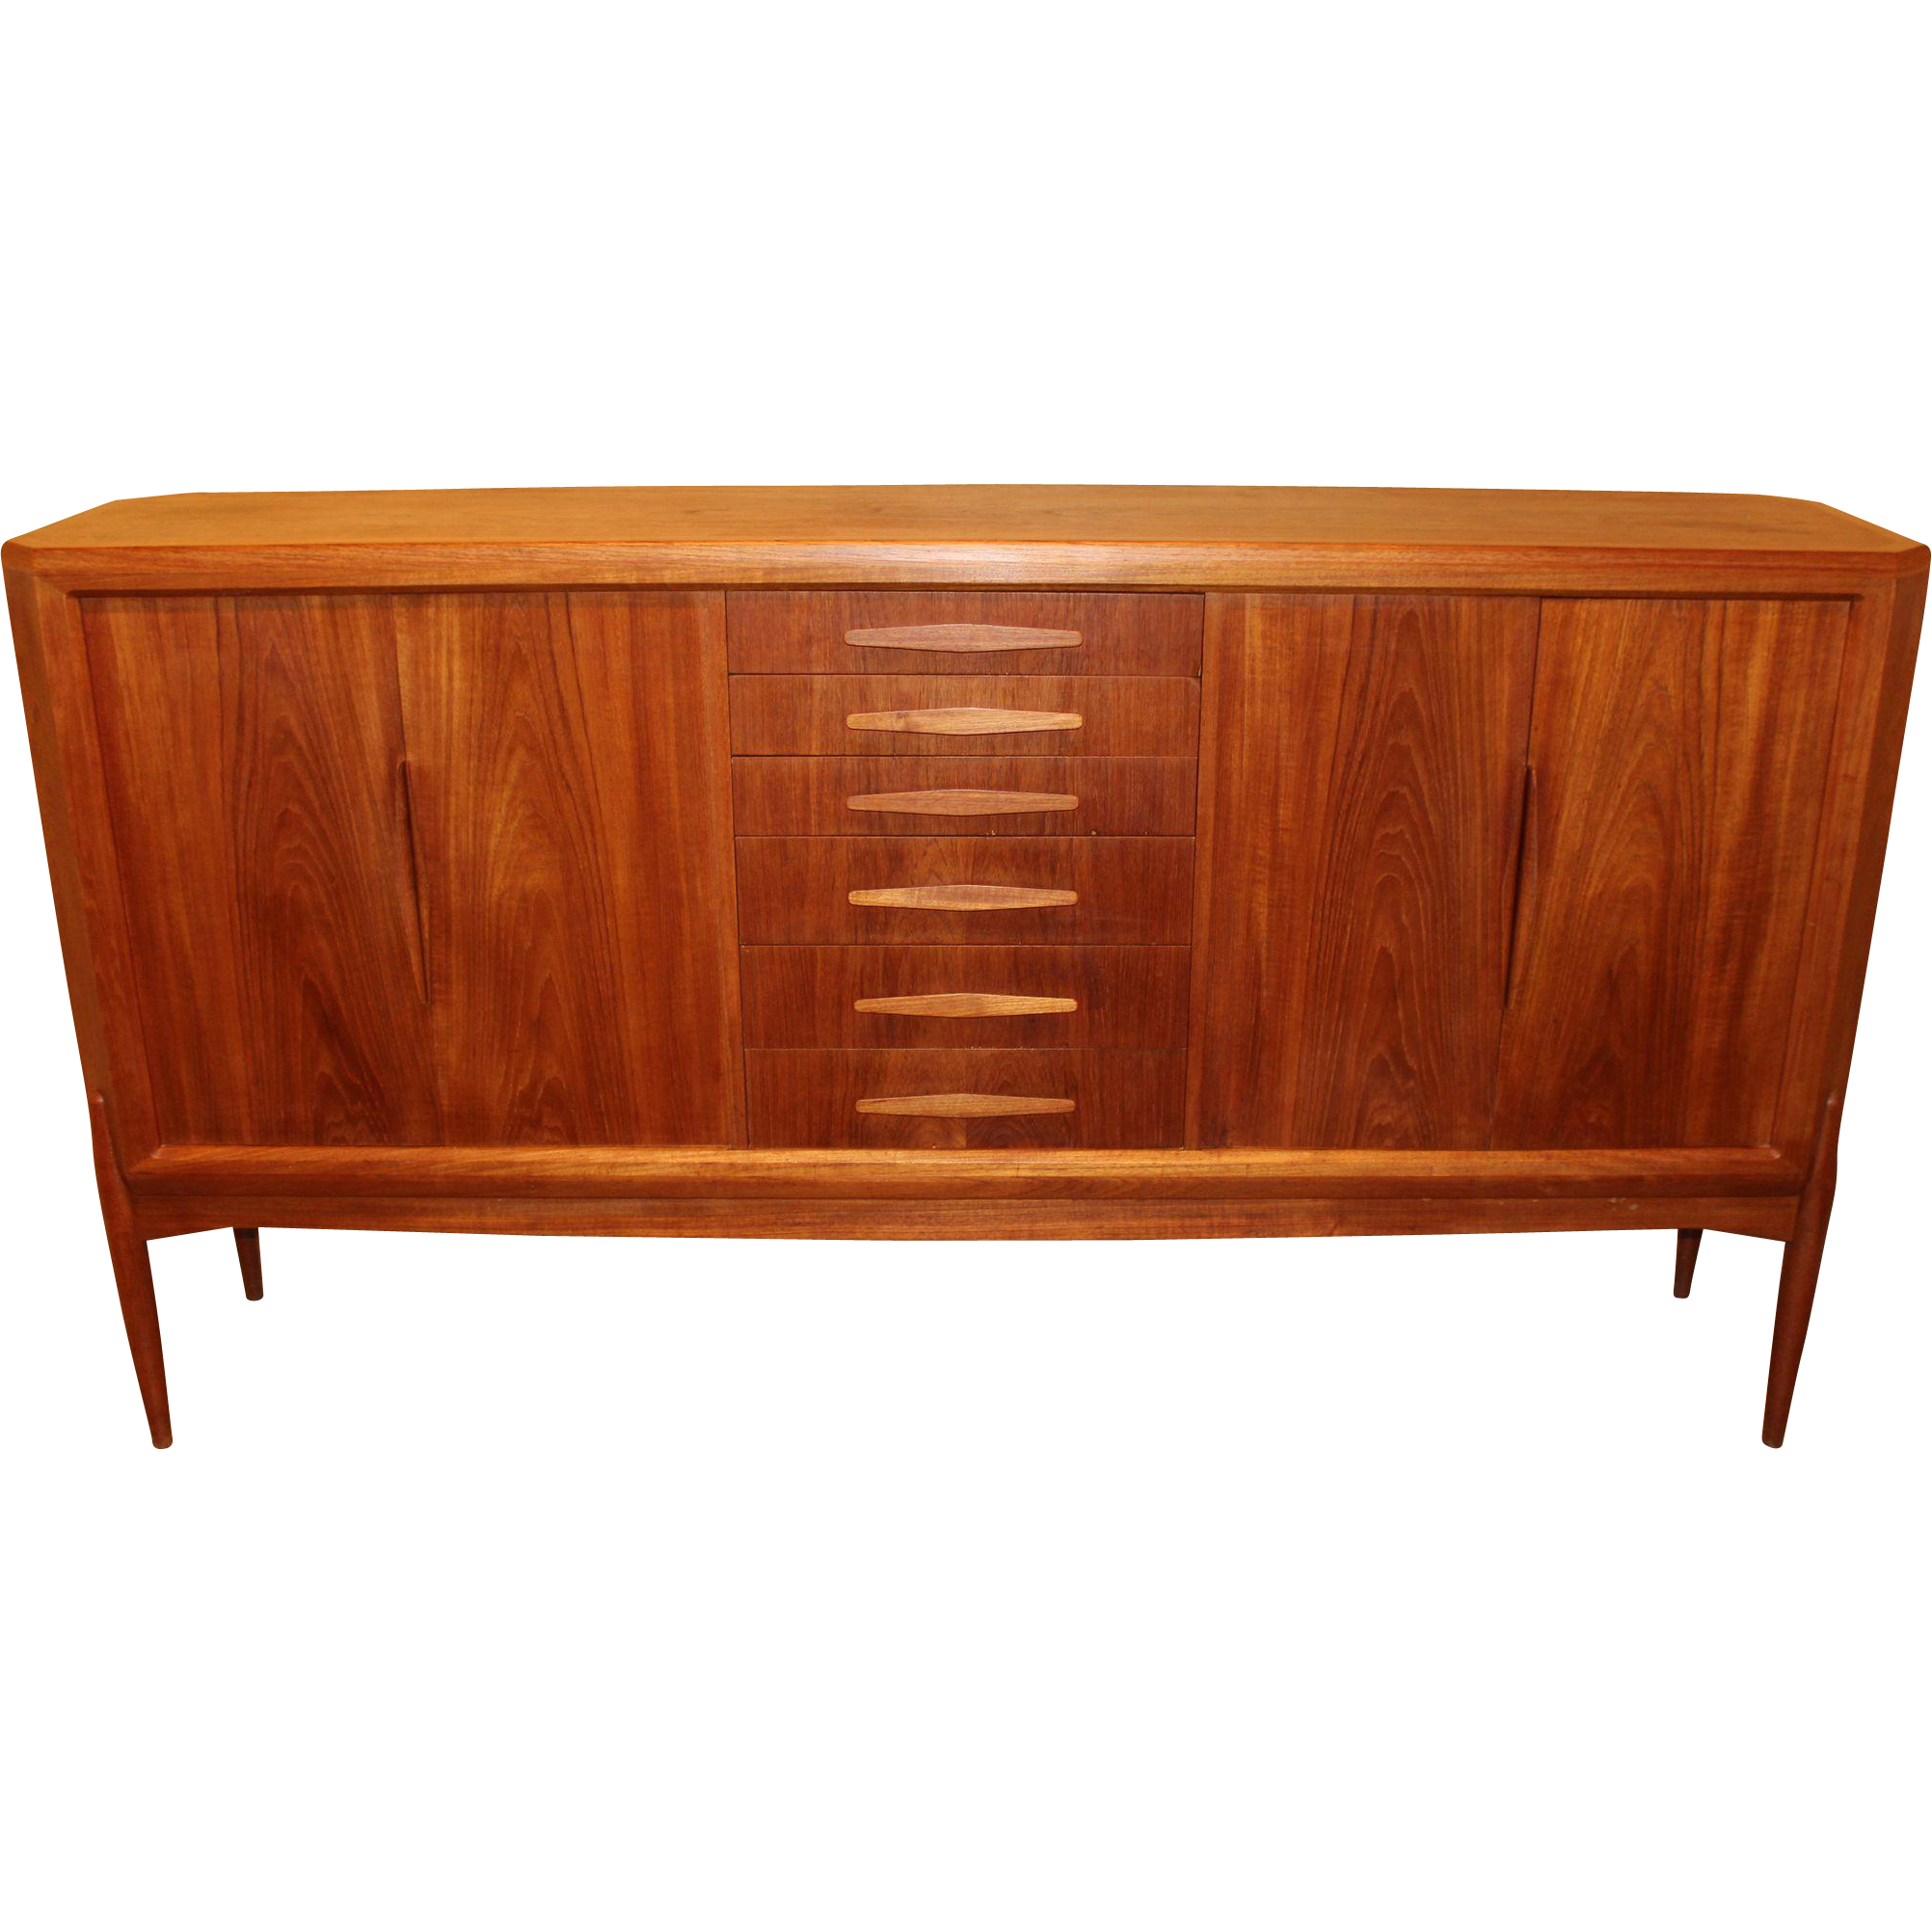 Danish Sideboard or Highboy Designed by Johannes Andersen, circa 1950s